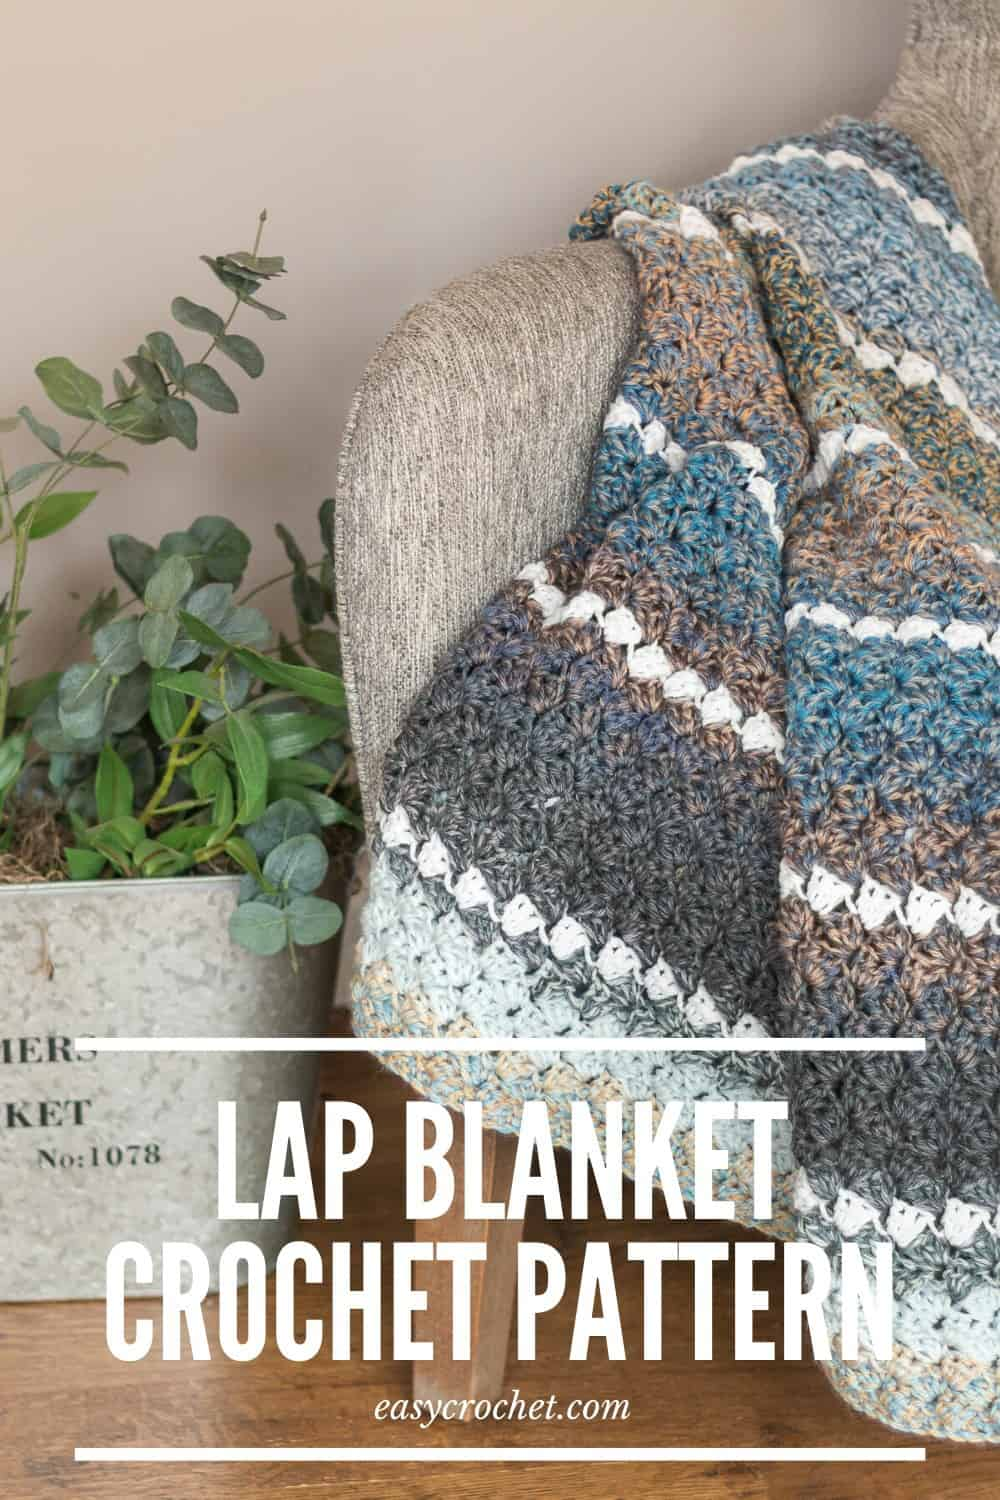 Free Crochet Lap Blanket Pattern using three beginner-friendly crochet stitches! Free Crochet Blanket Pattern from Easycrochet.com via @easycrochetcom